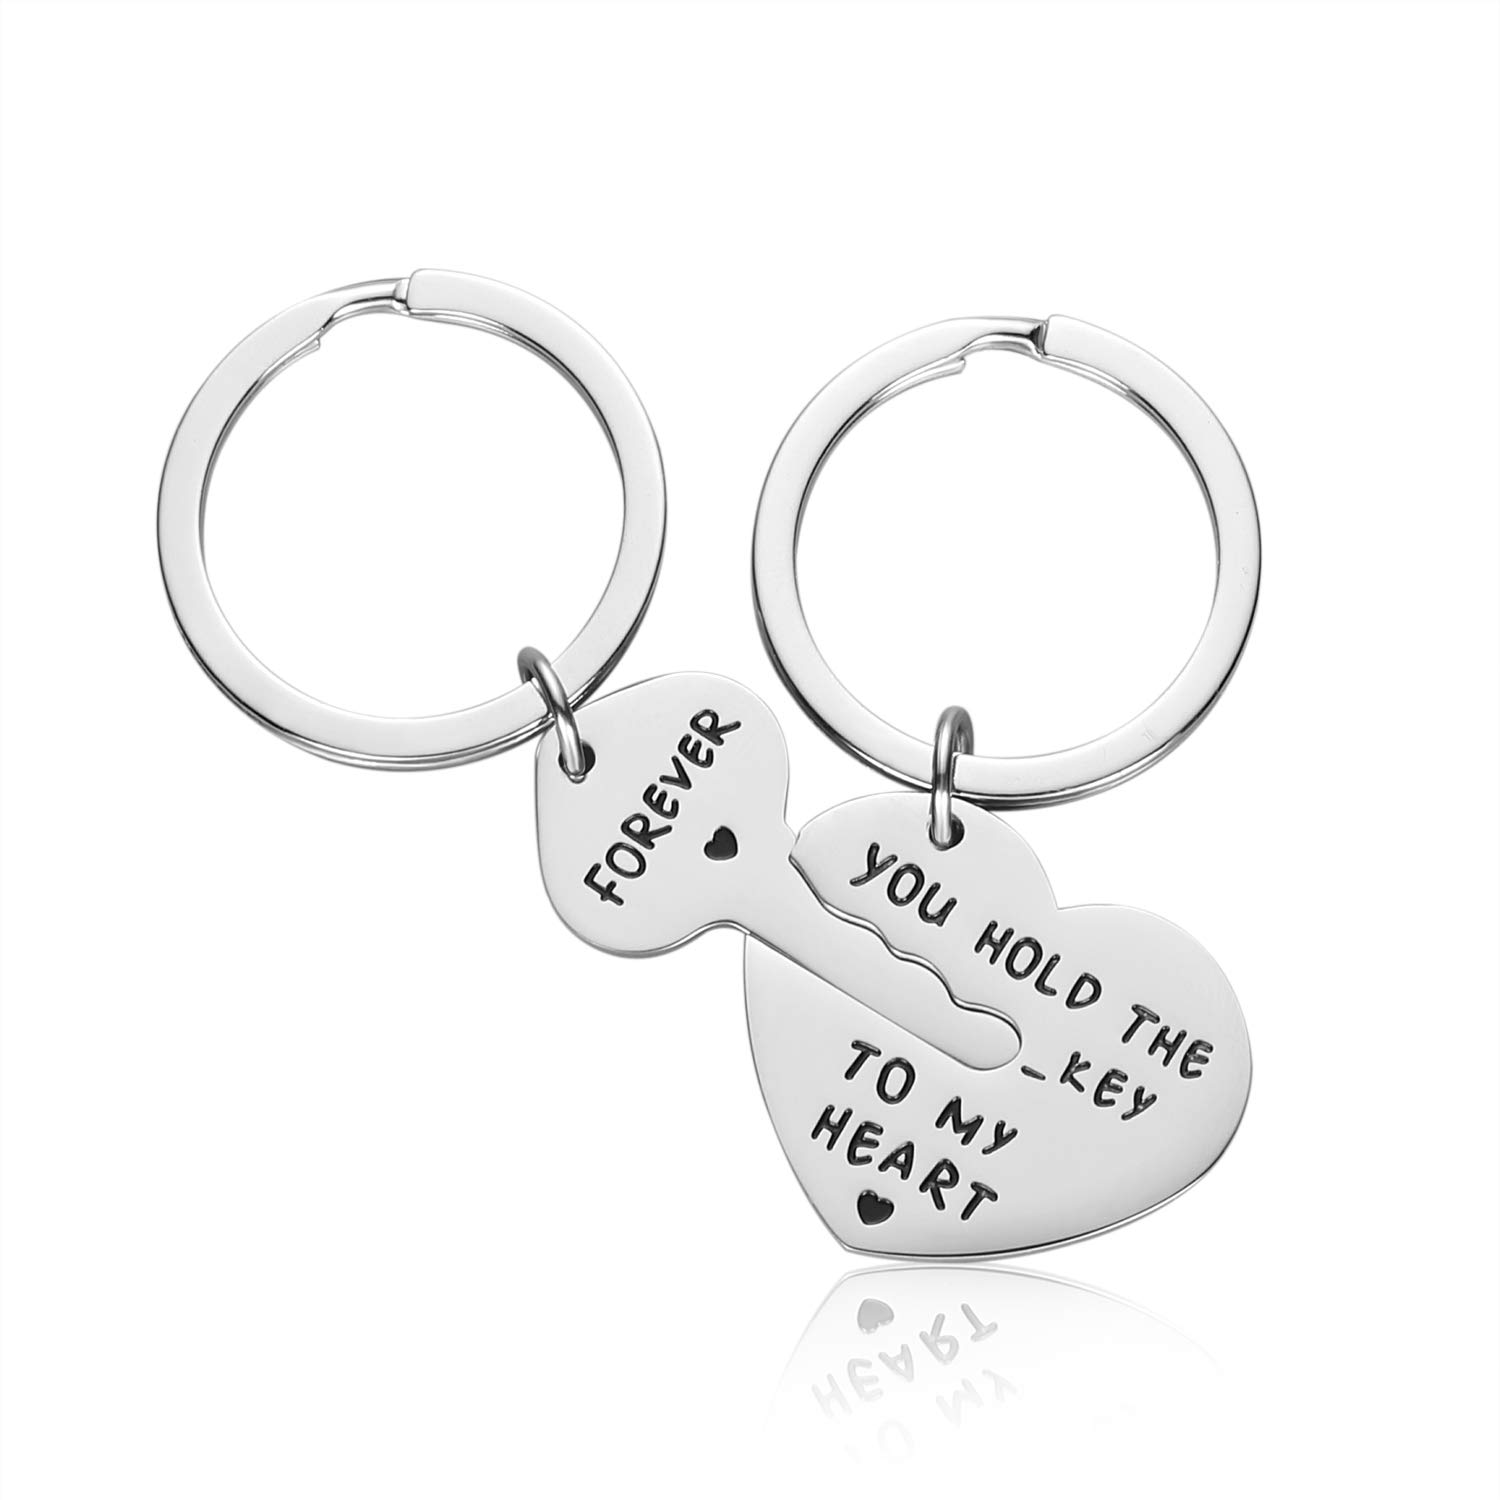 302e63091c Couple Gifts for Boyfriend and Girlfriend - You Hold The Key to My Heart  Couple Keychain for Him and Her, Valentine's Day Birthday Gifts for  Boyfriend ...